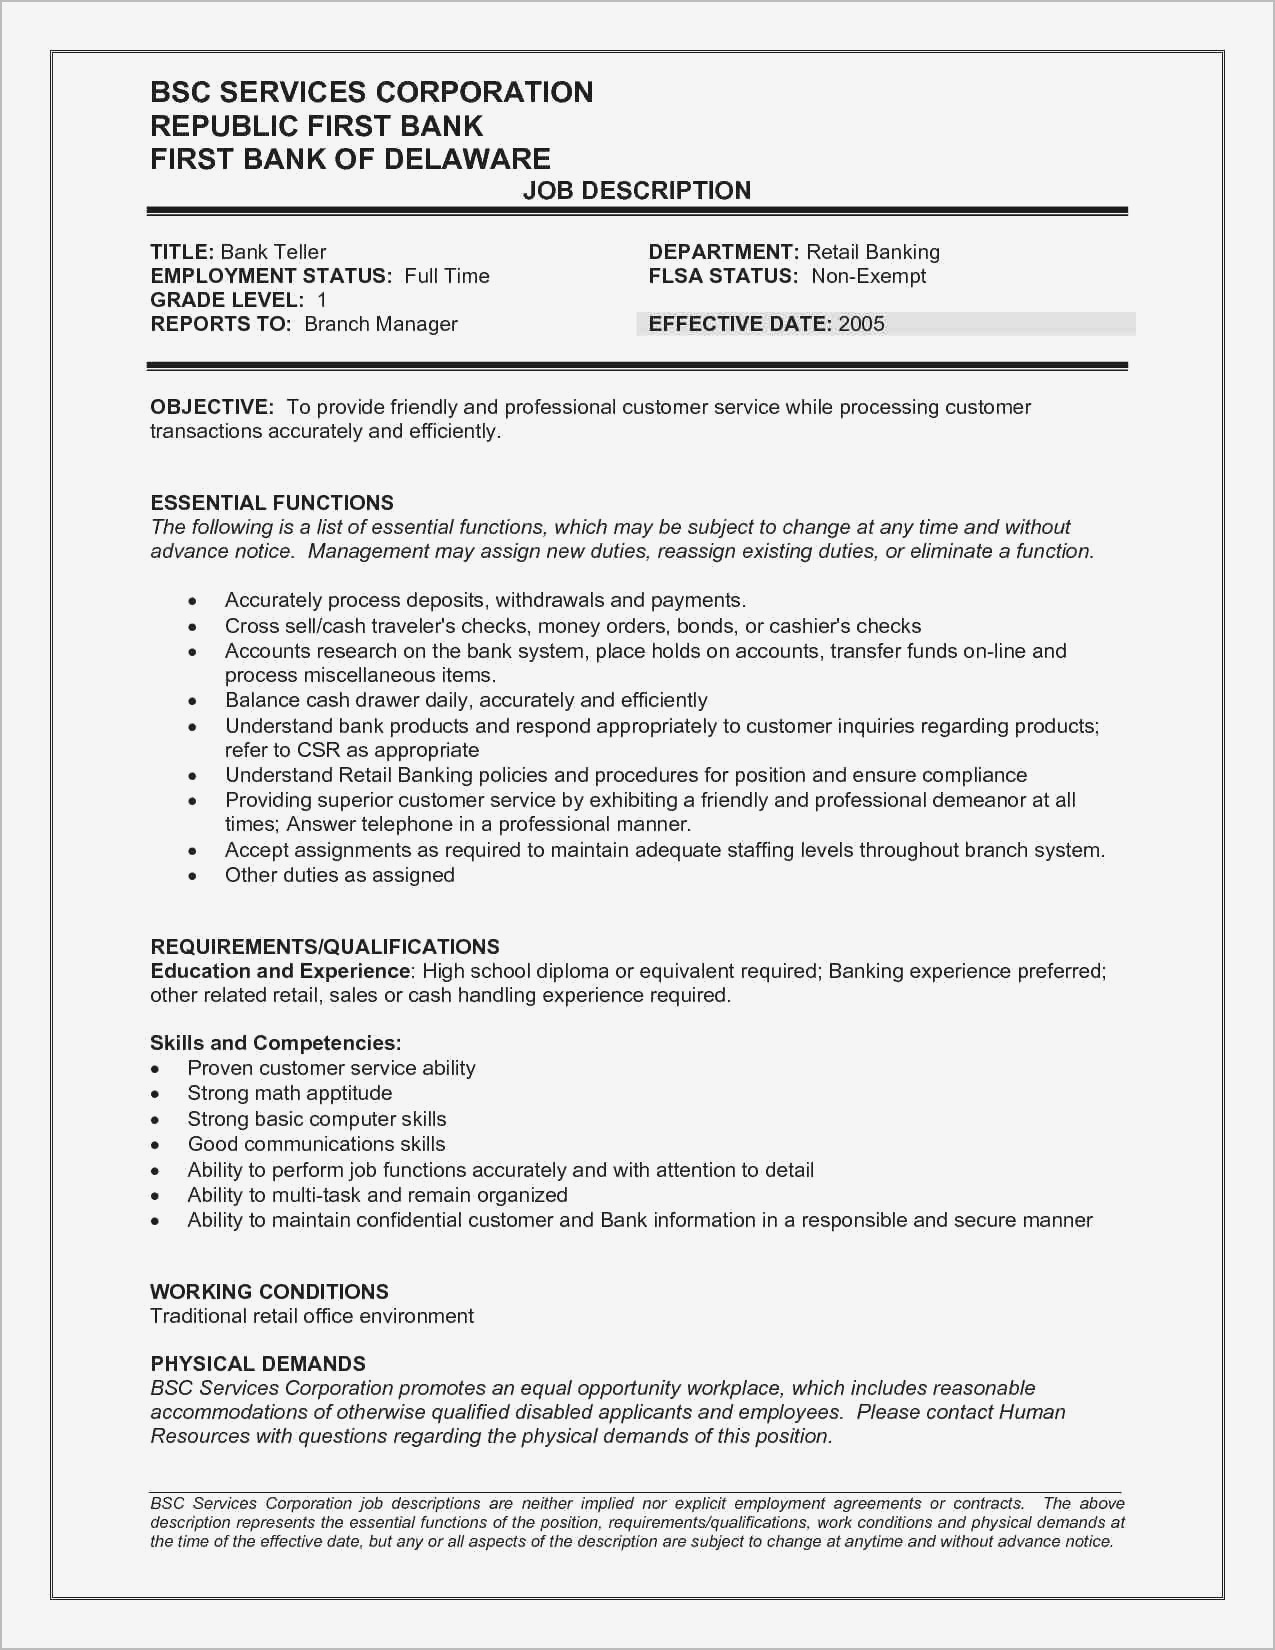 Cash Handling Resume - Basic Resume Examples for Retail Jobs Resume Resume Examples